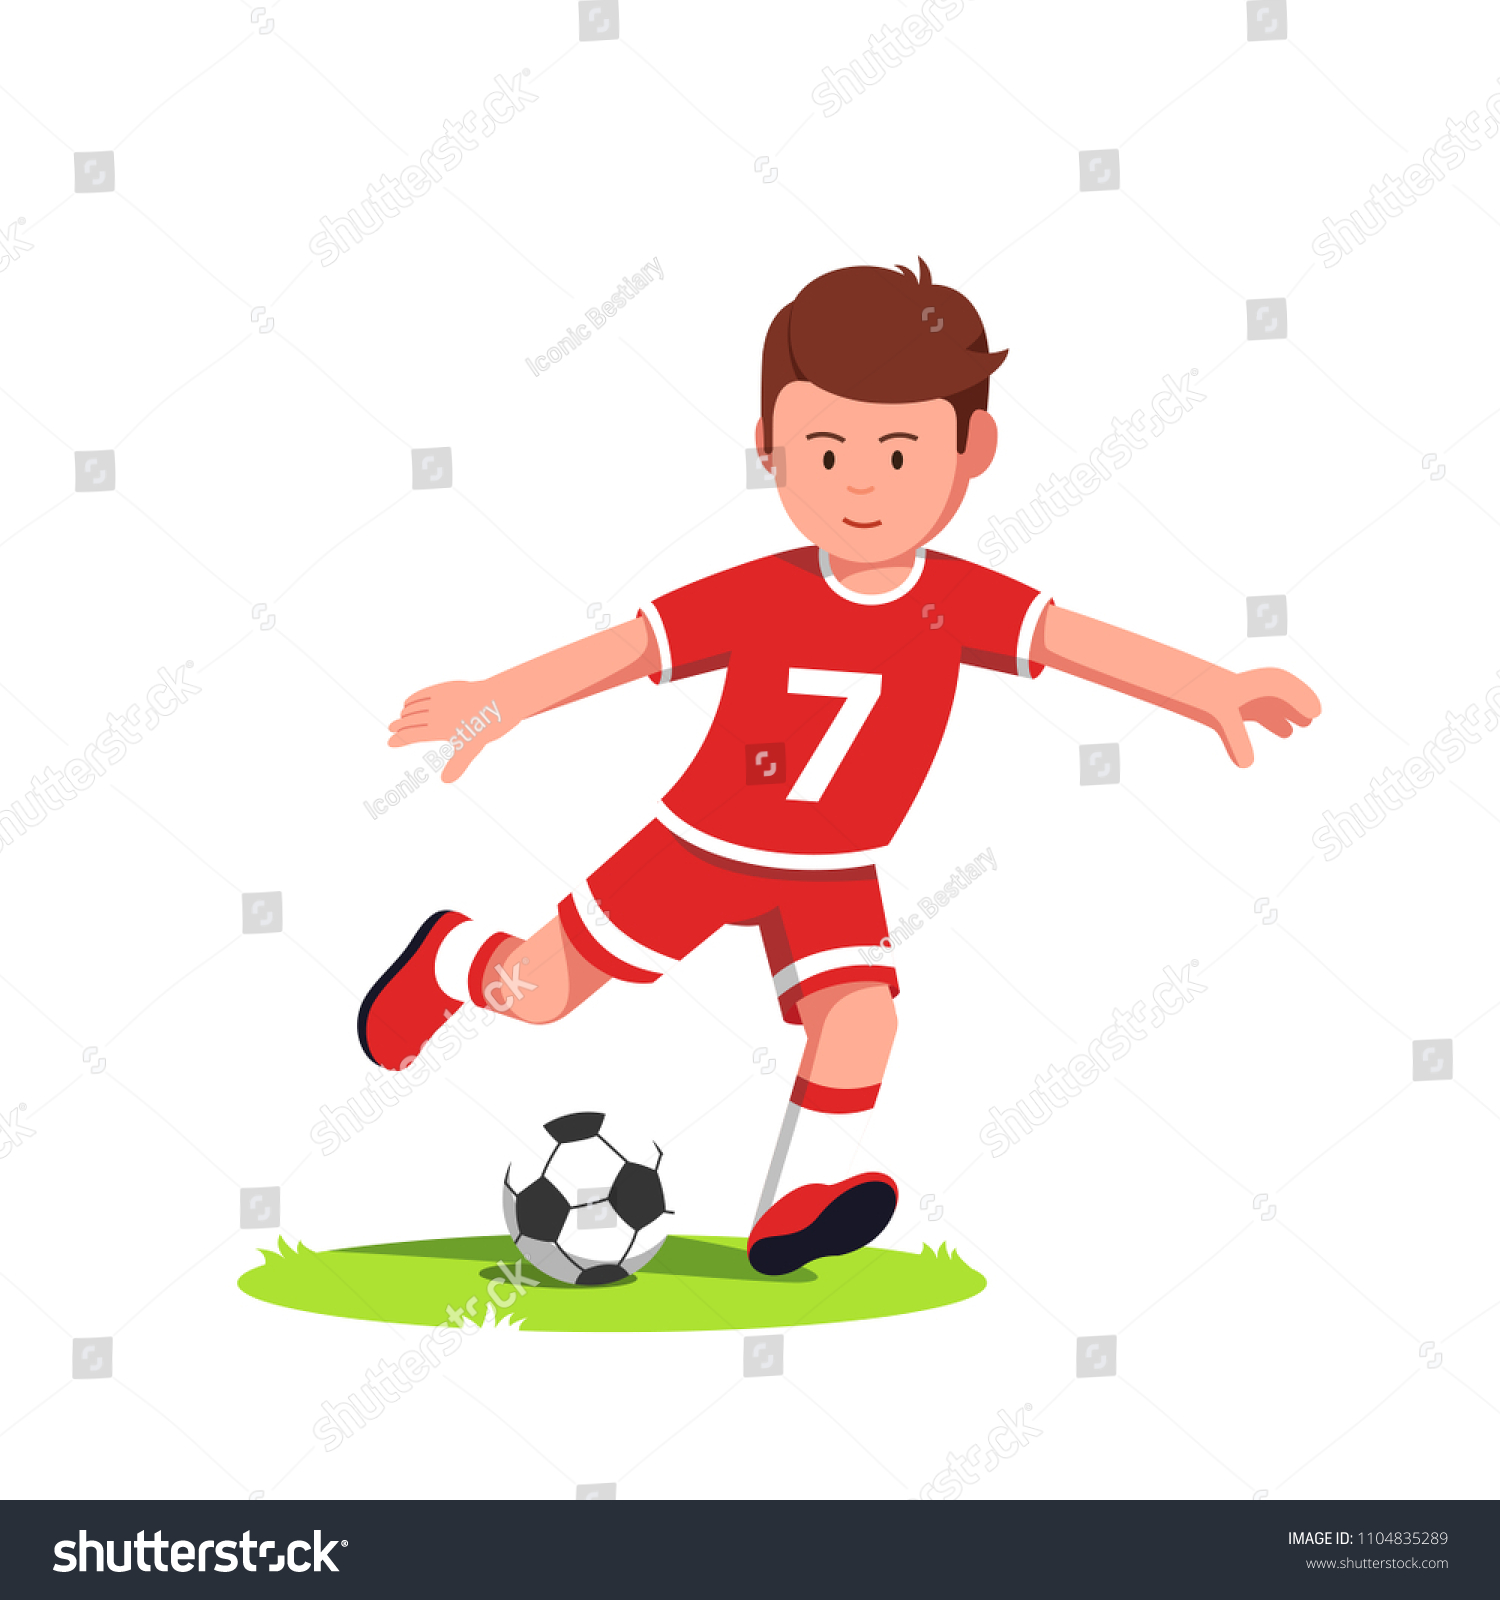 teenage soccer player boy playing kicking stock vector (royalty free